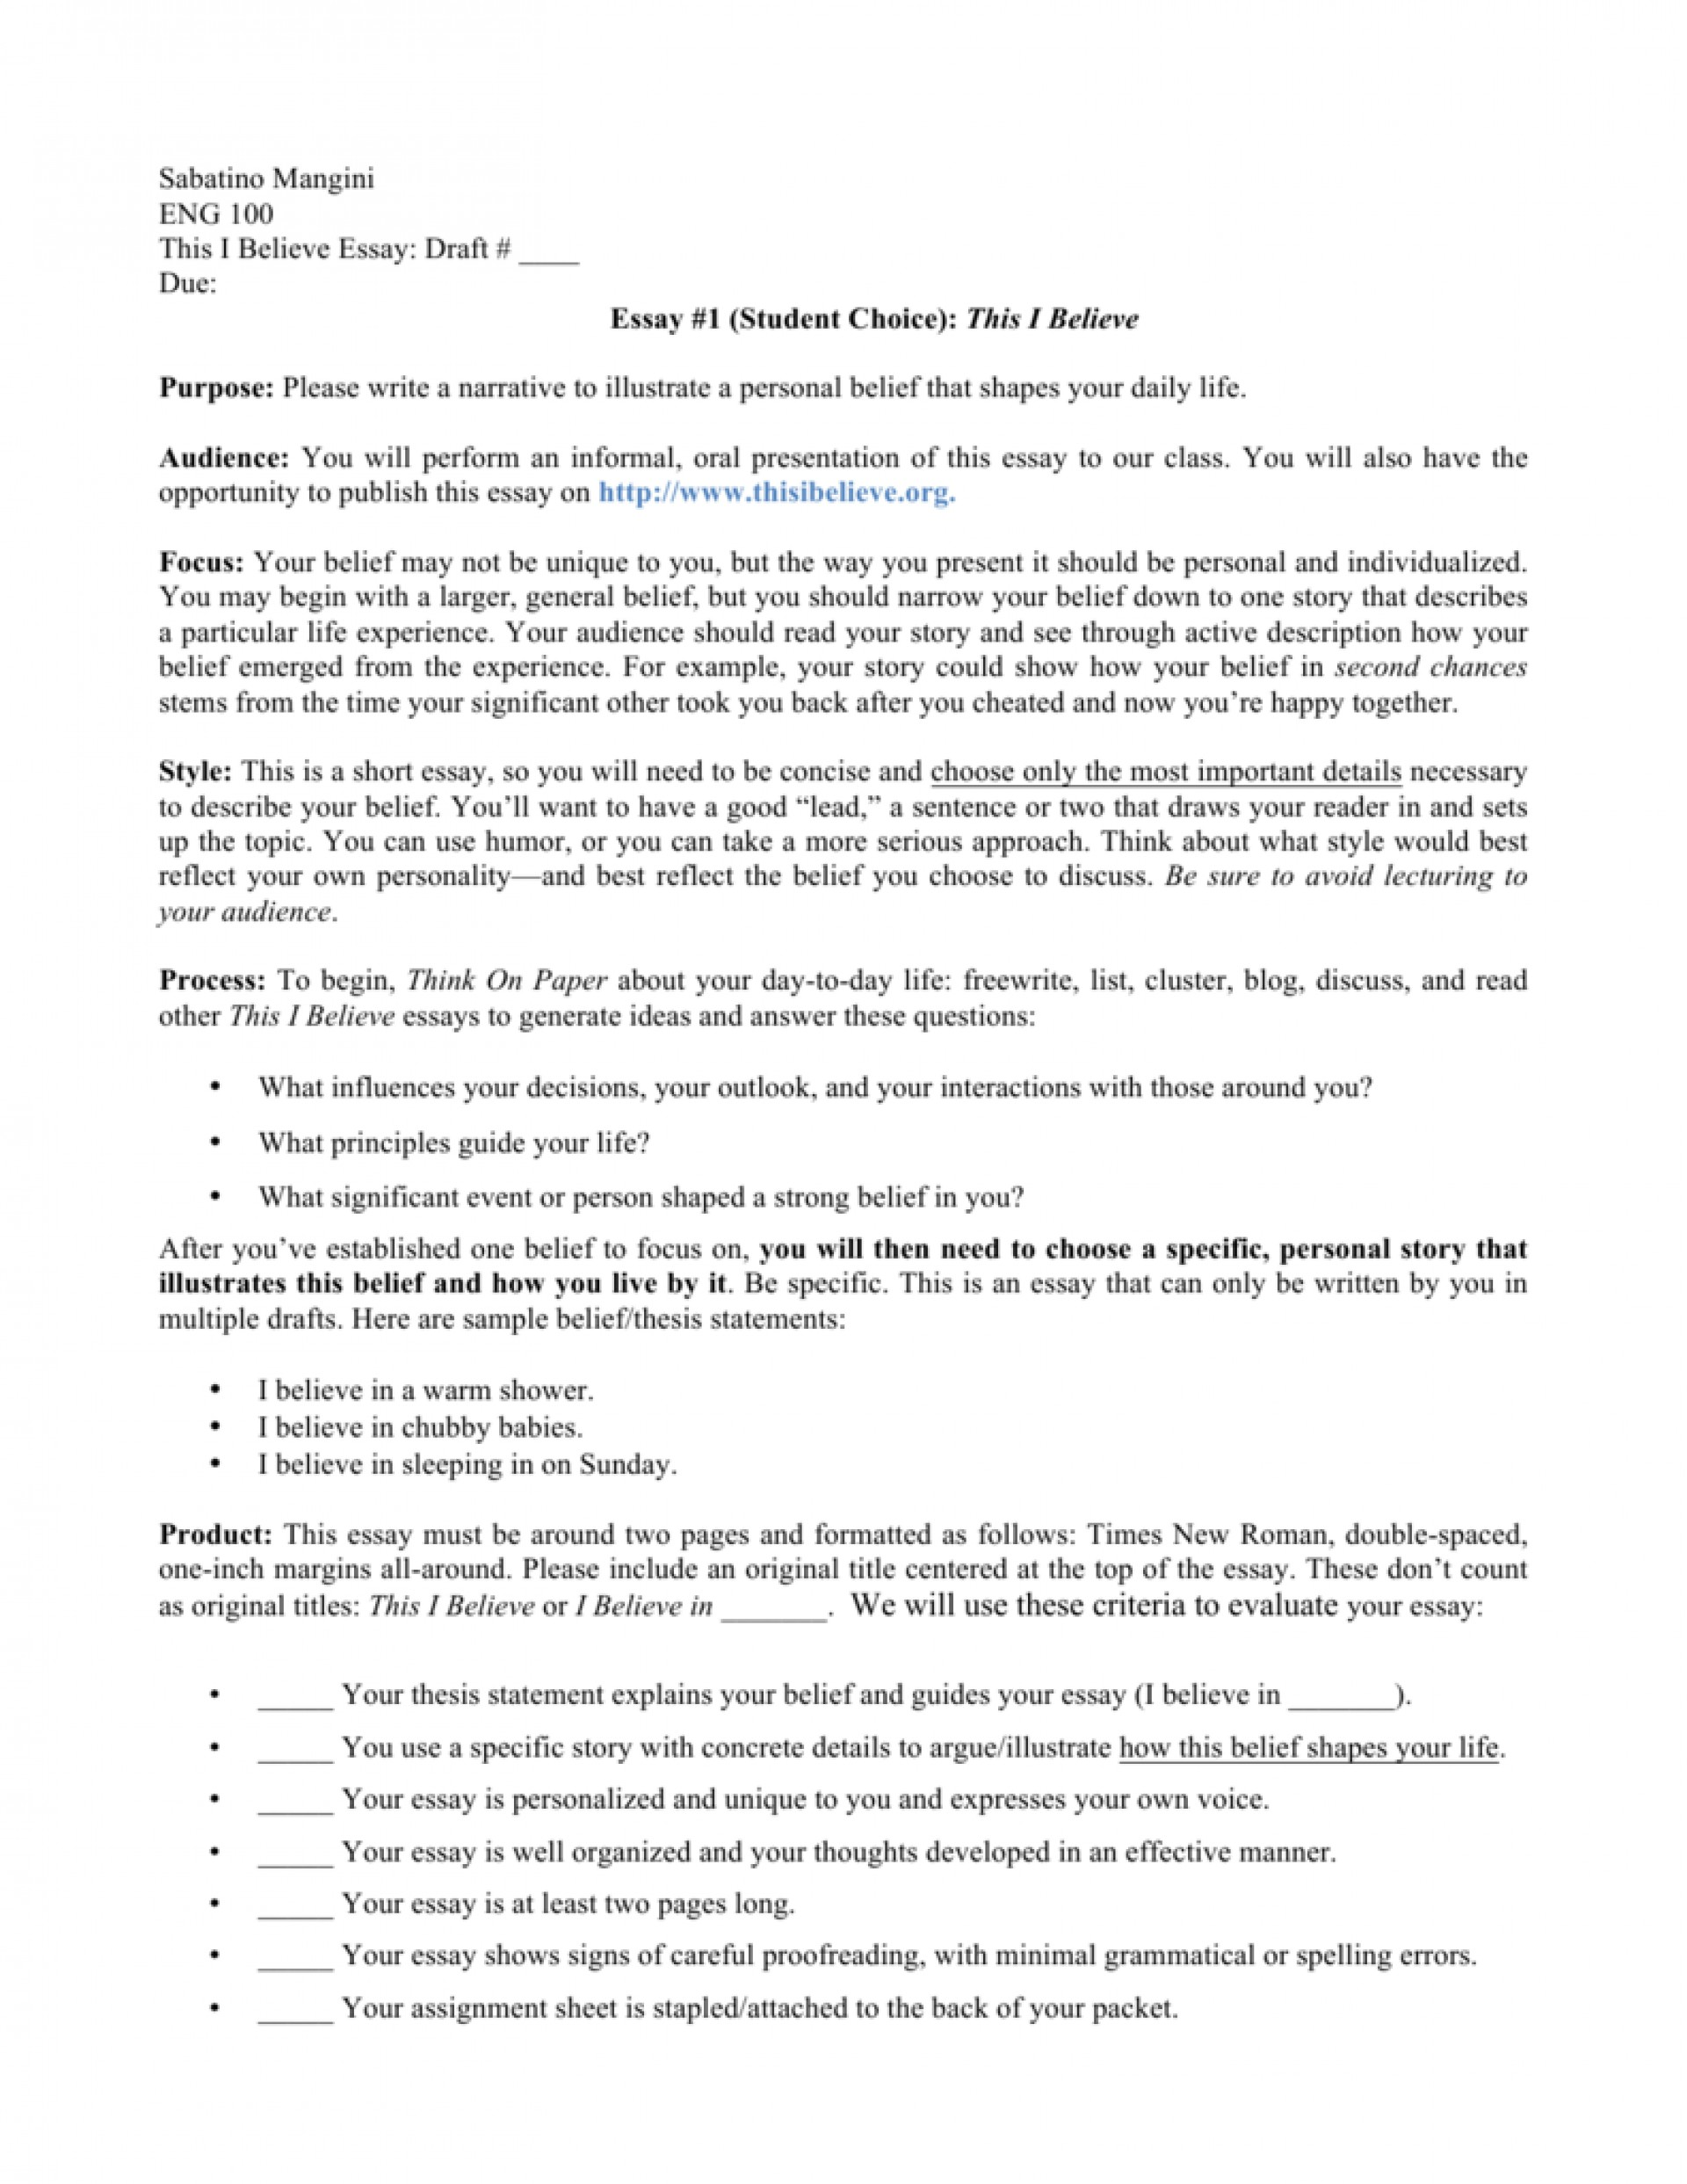 002 Essay Example This I Believe Essays By Students 008807227 1 Wonderful 1920